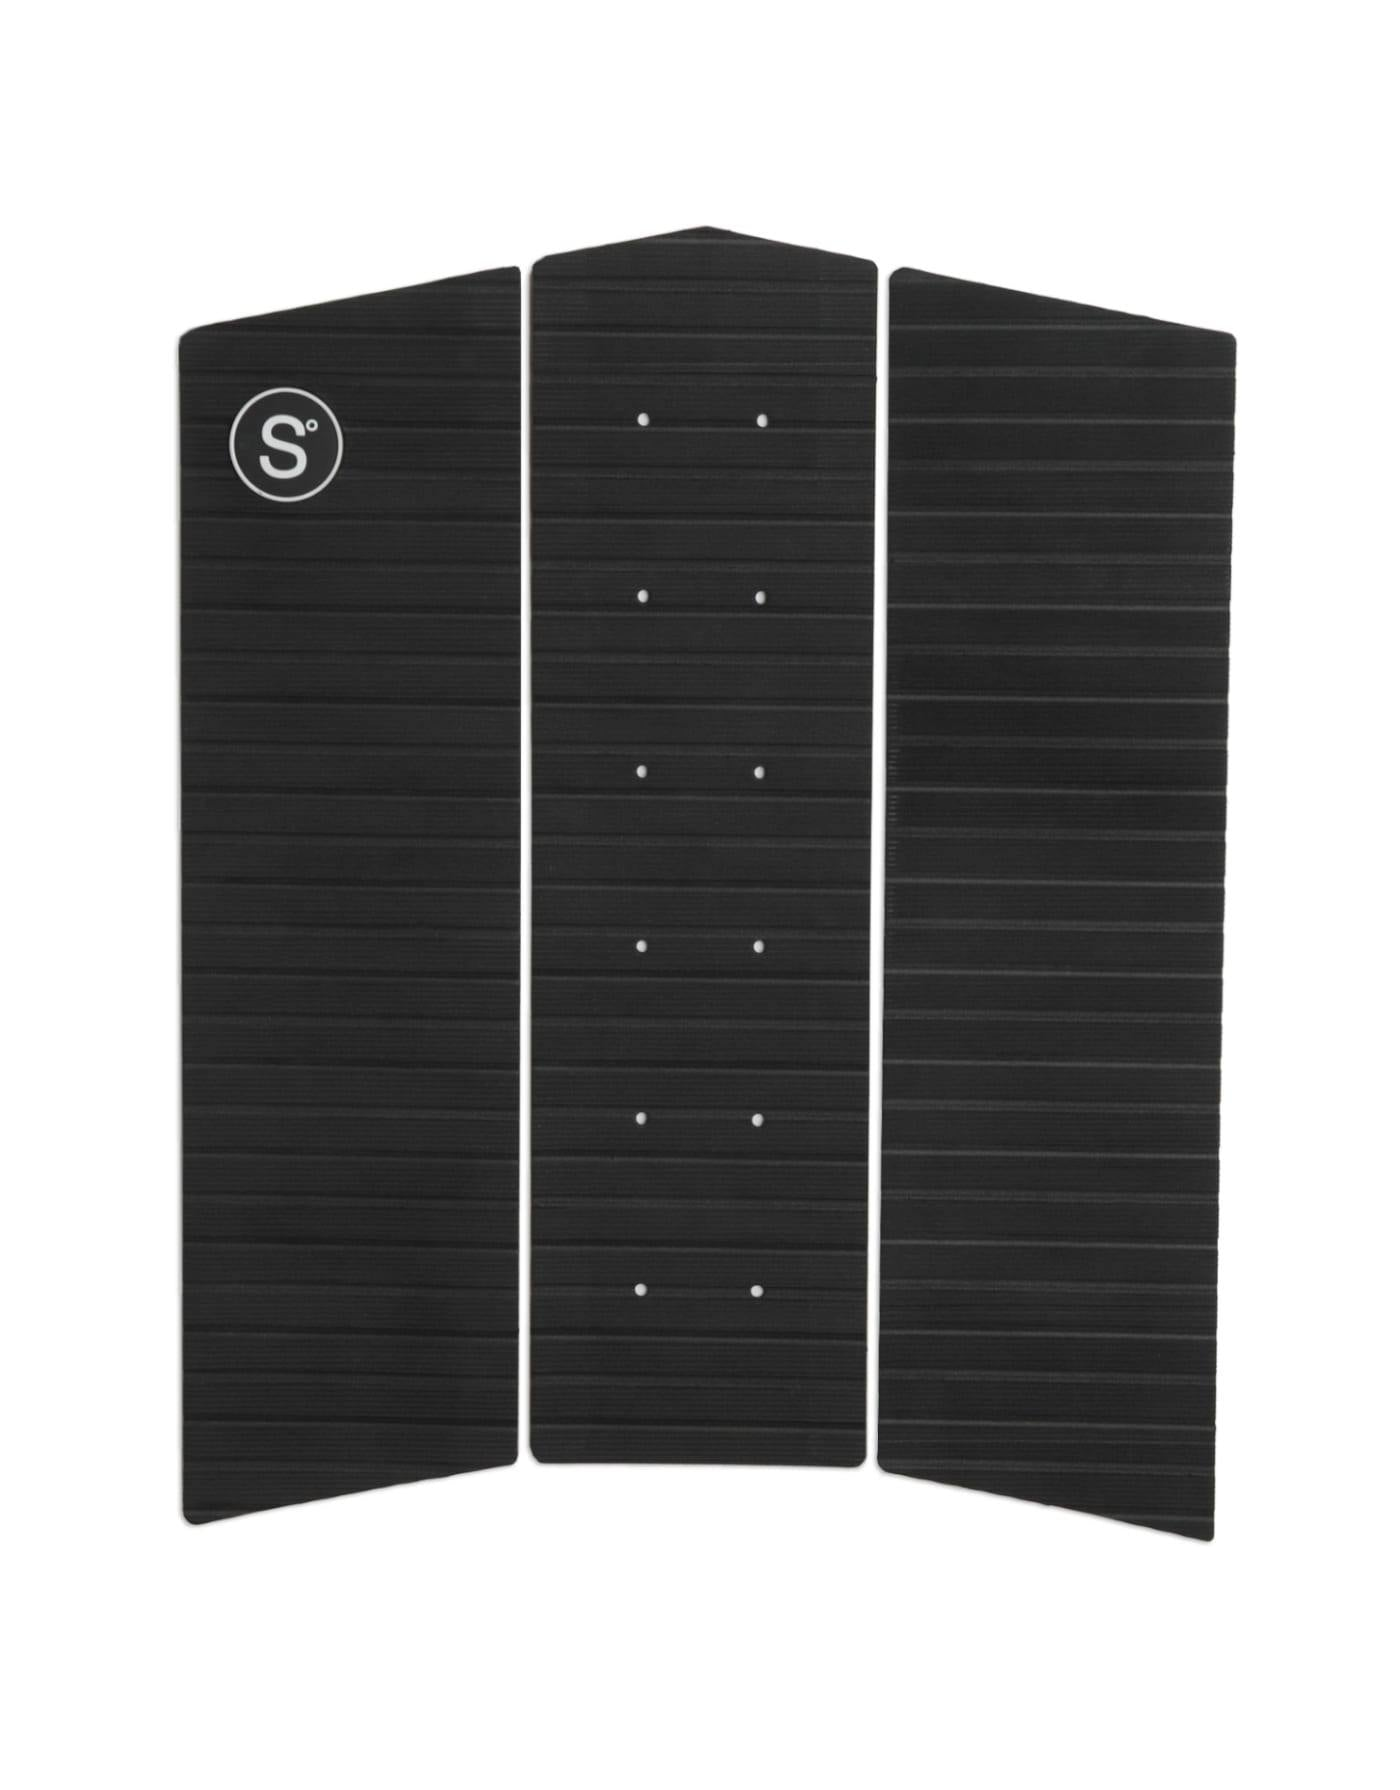 N°7 Sympl Front Traction Pad - Urban Surf